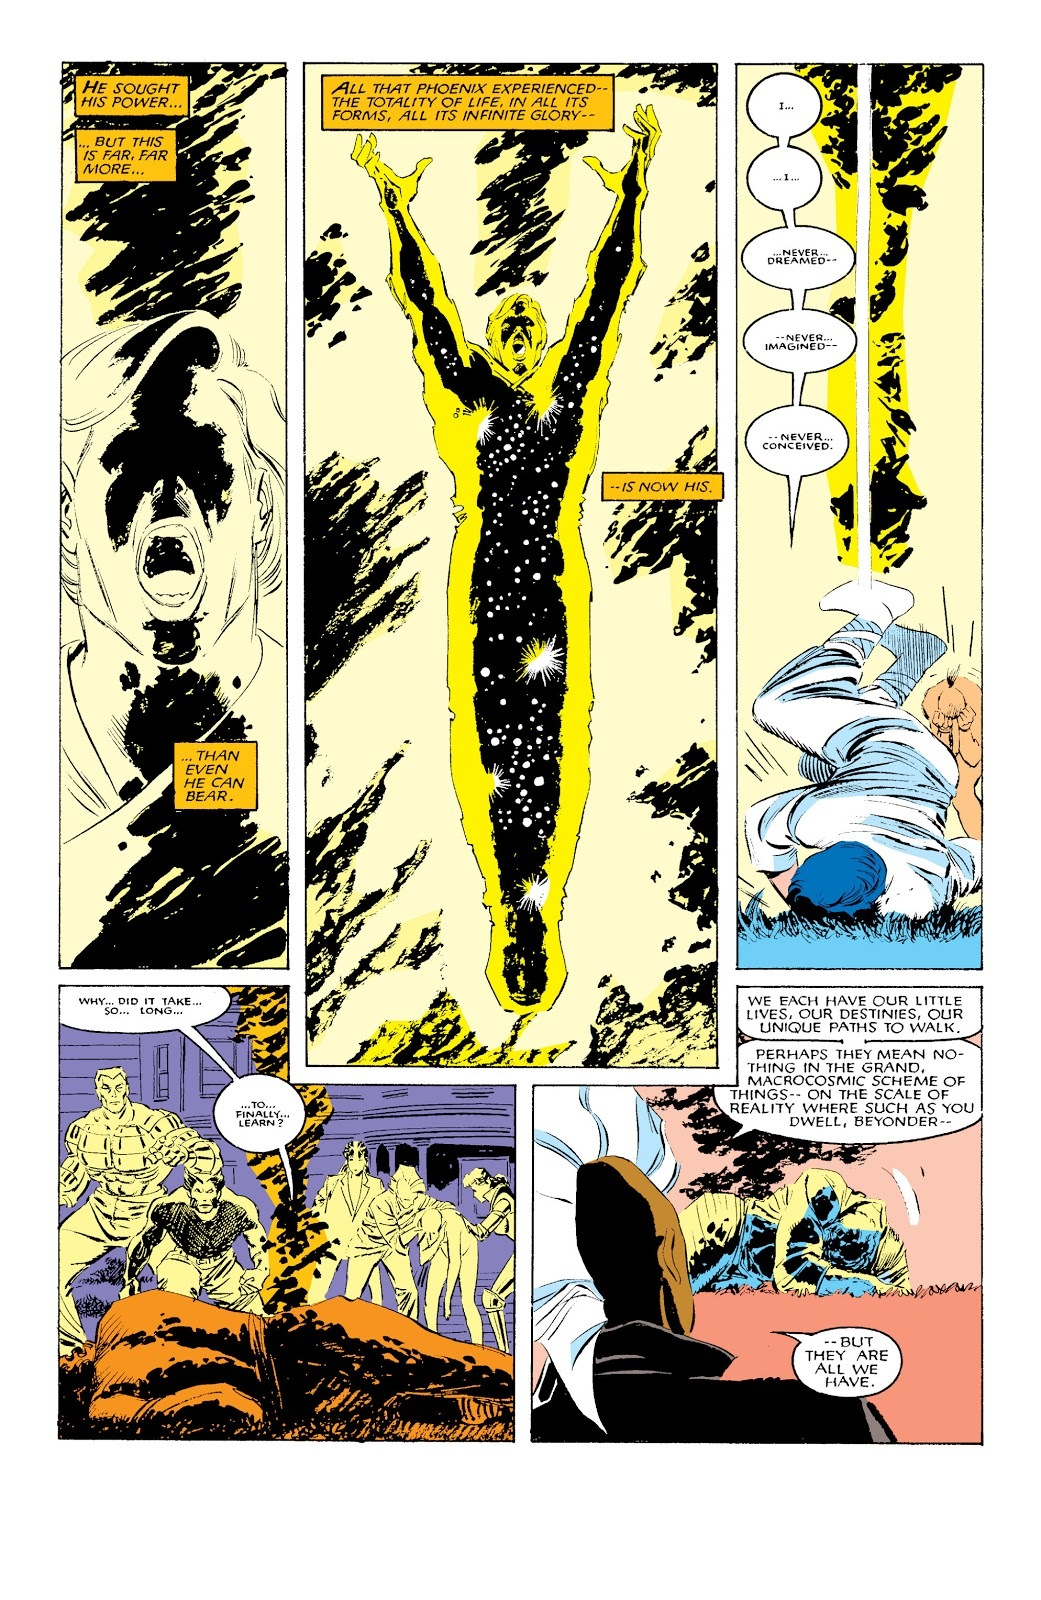 The Beyonder attempts to retake the powers he gave to Rachel but is overwhelmed by her.